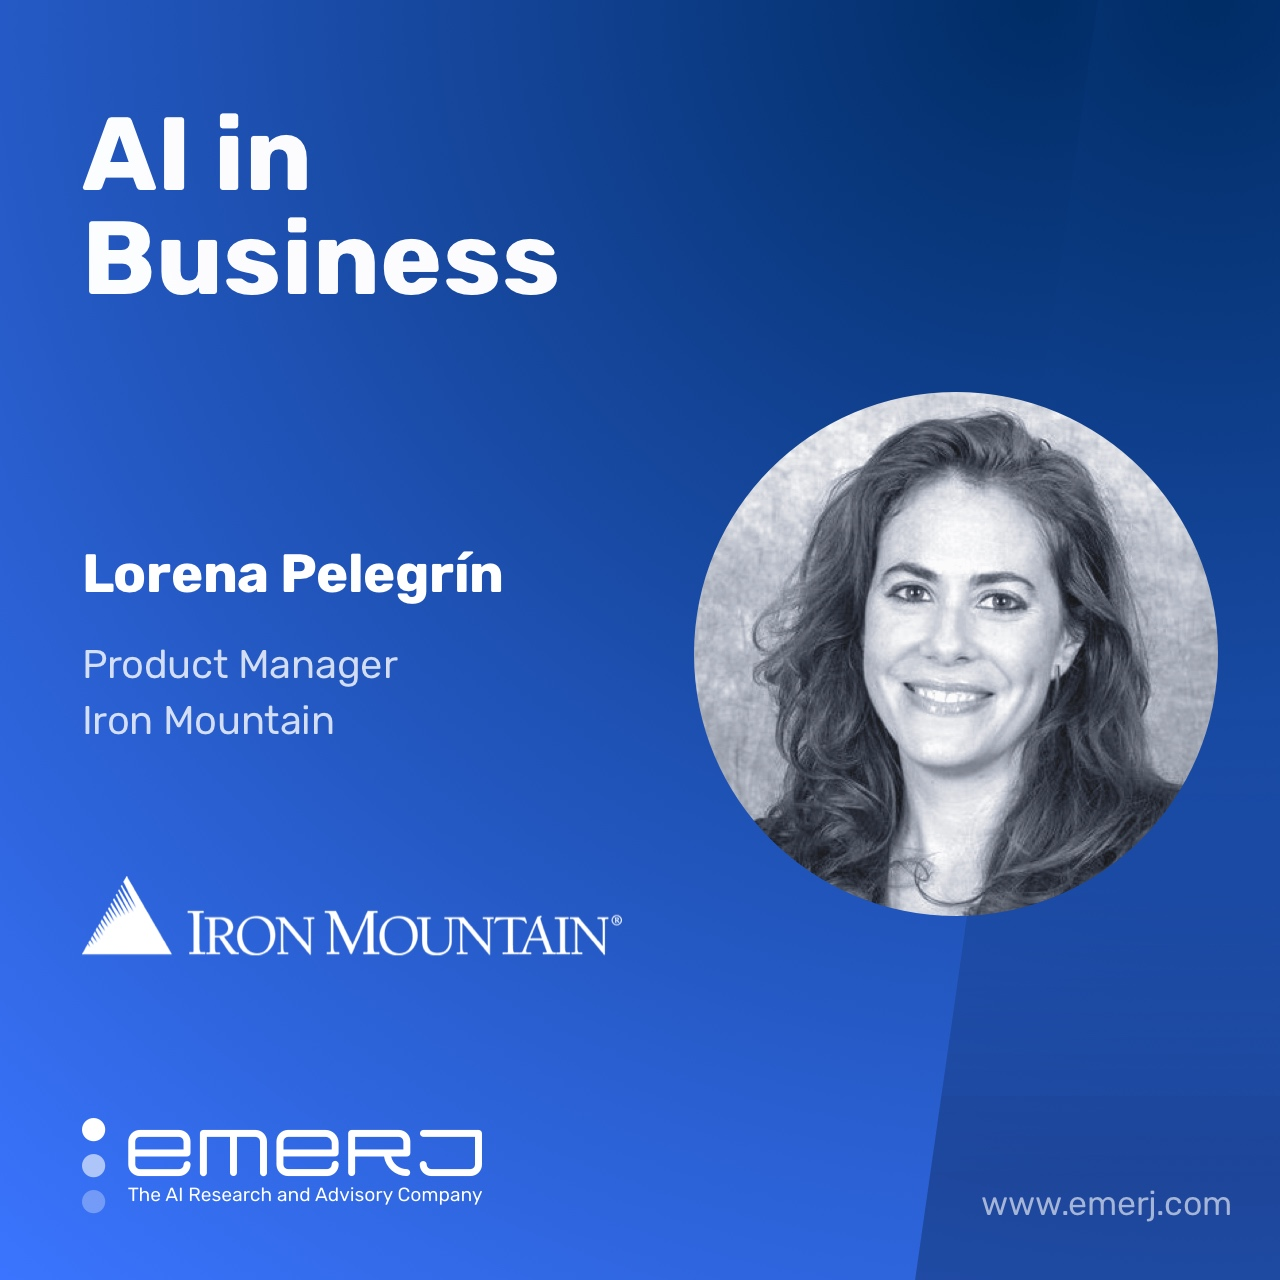 AI in Oil and Gas, Unlocking the Value of Data - with Lorena Pelegrín of Iron Mountain